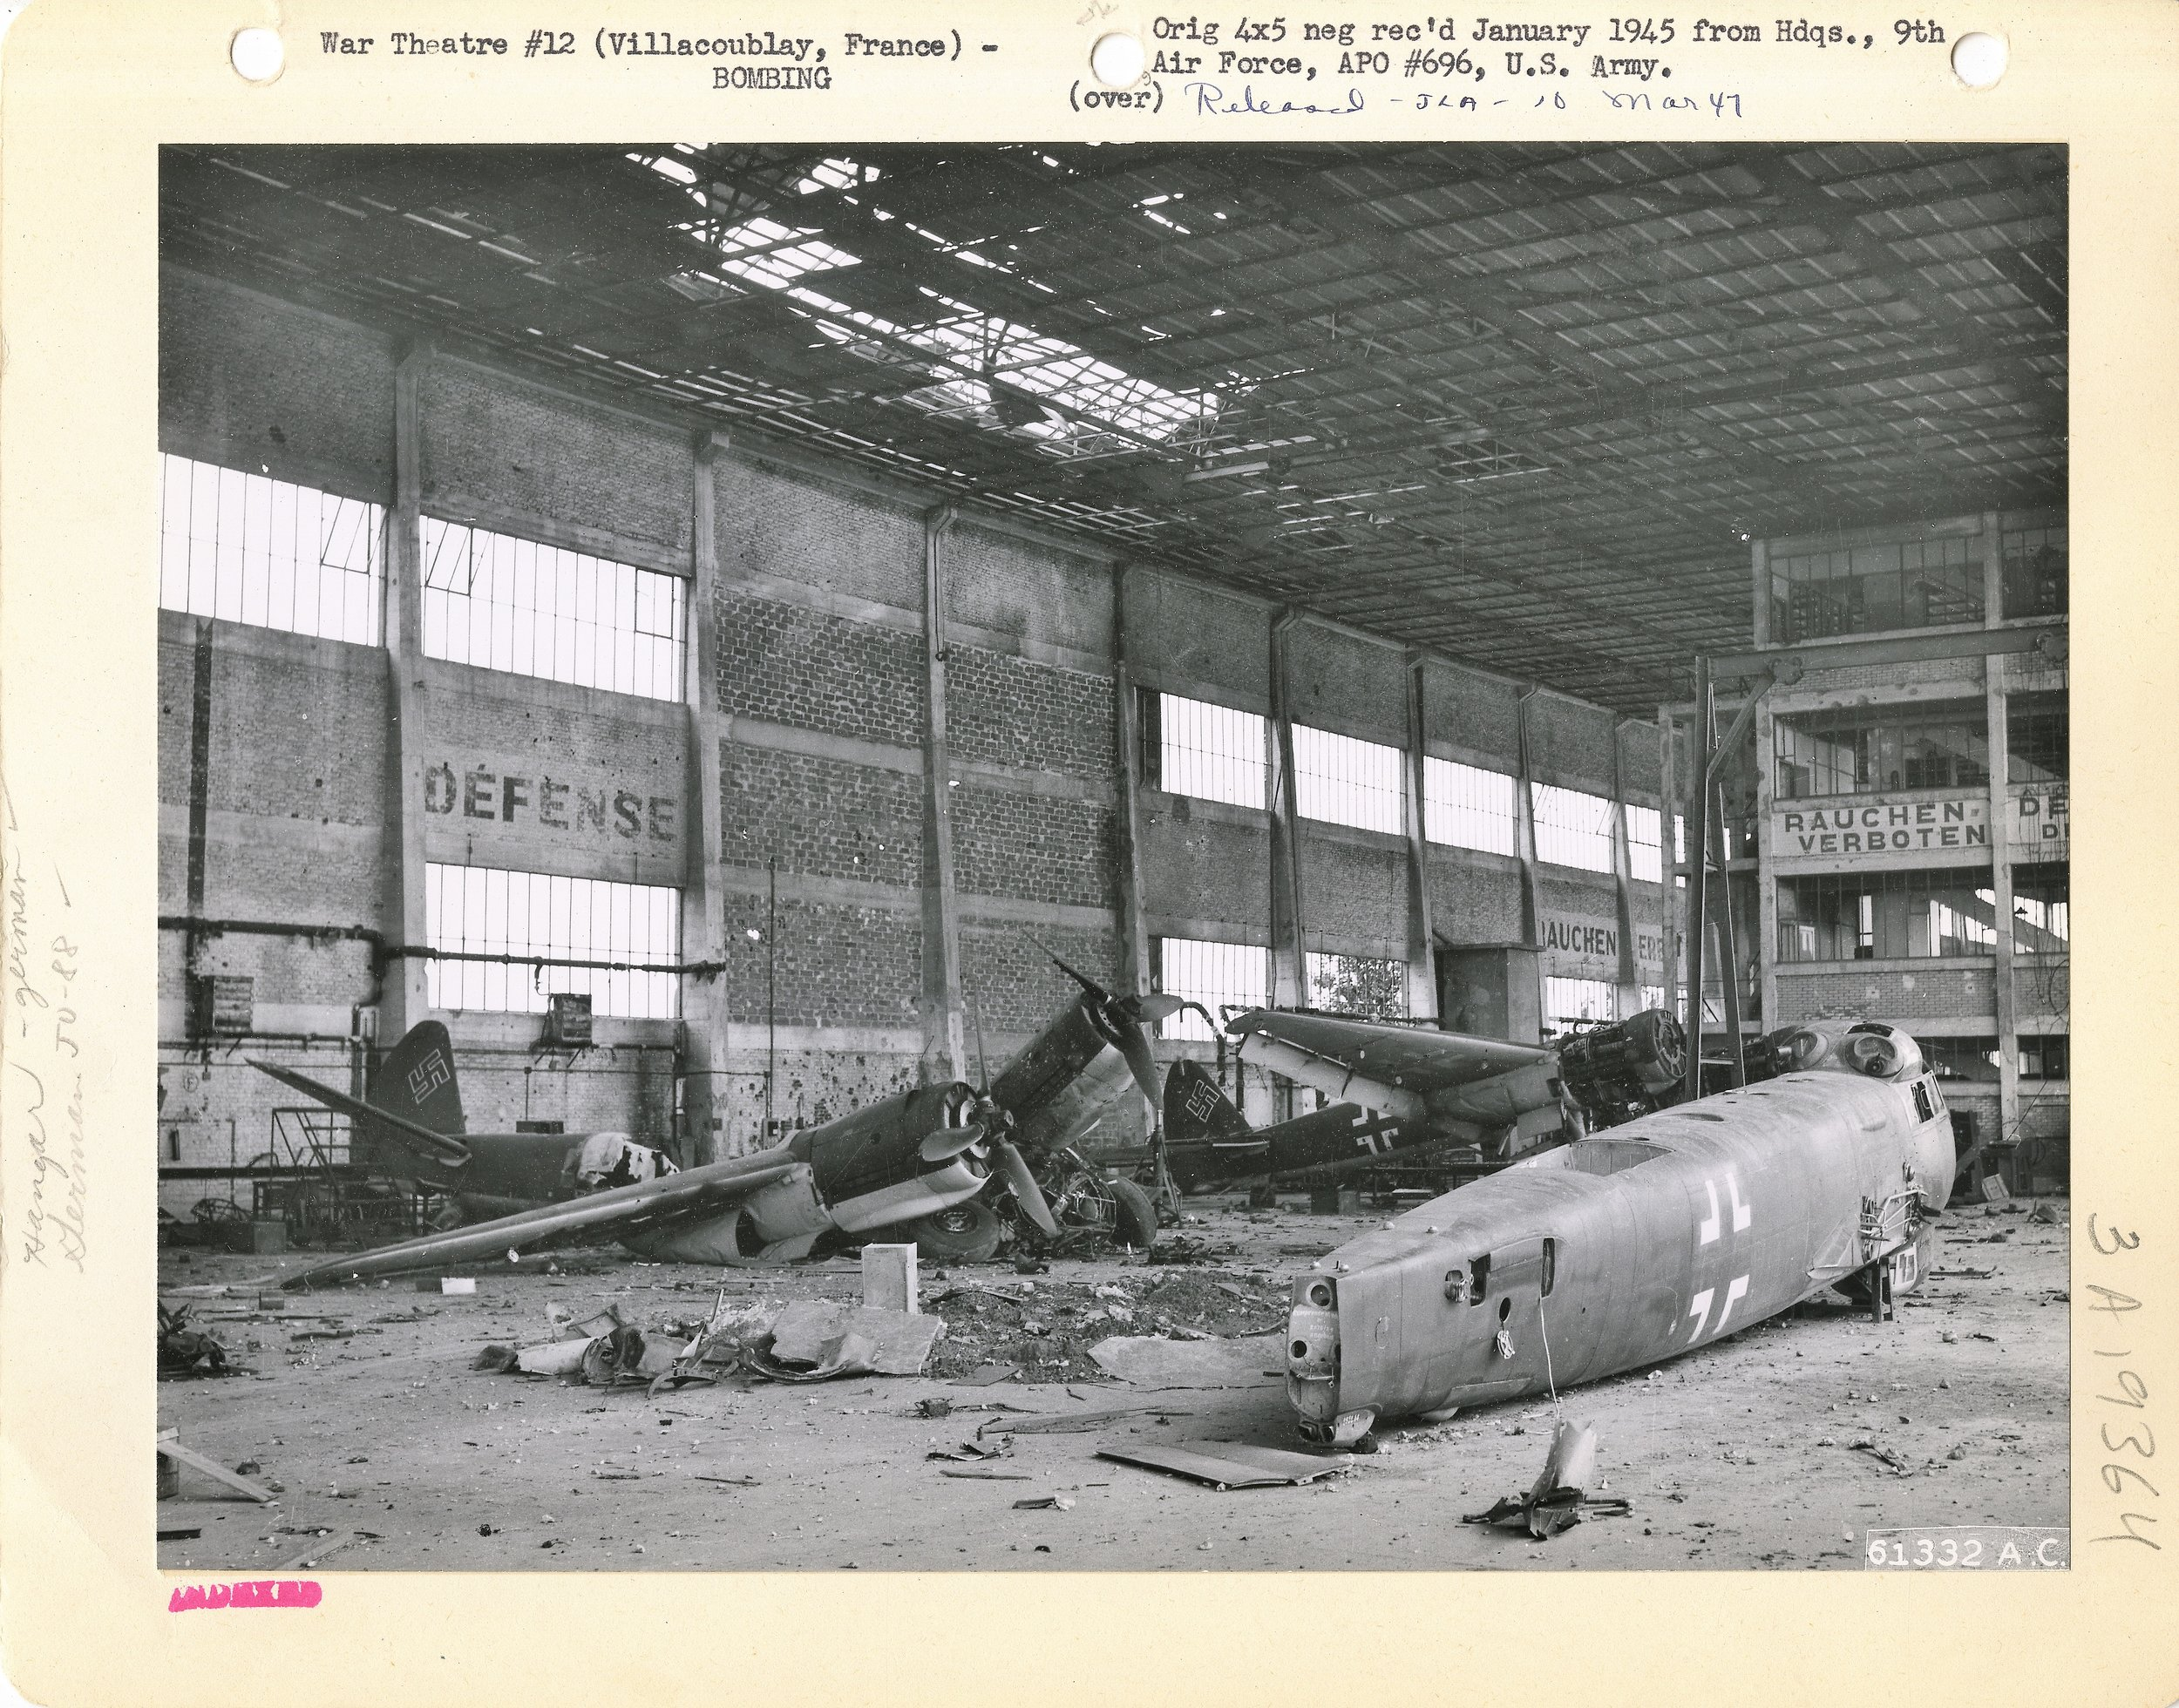 Previously cannibalized for spare parts and now bomb damaged German Junkers Ju-88 airframes at Villacoublay (France) after heavy U.S. bombing. HQ, 9th Air Force.